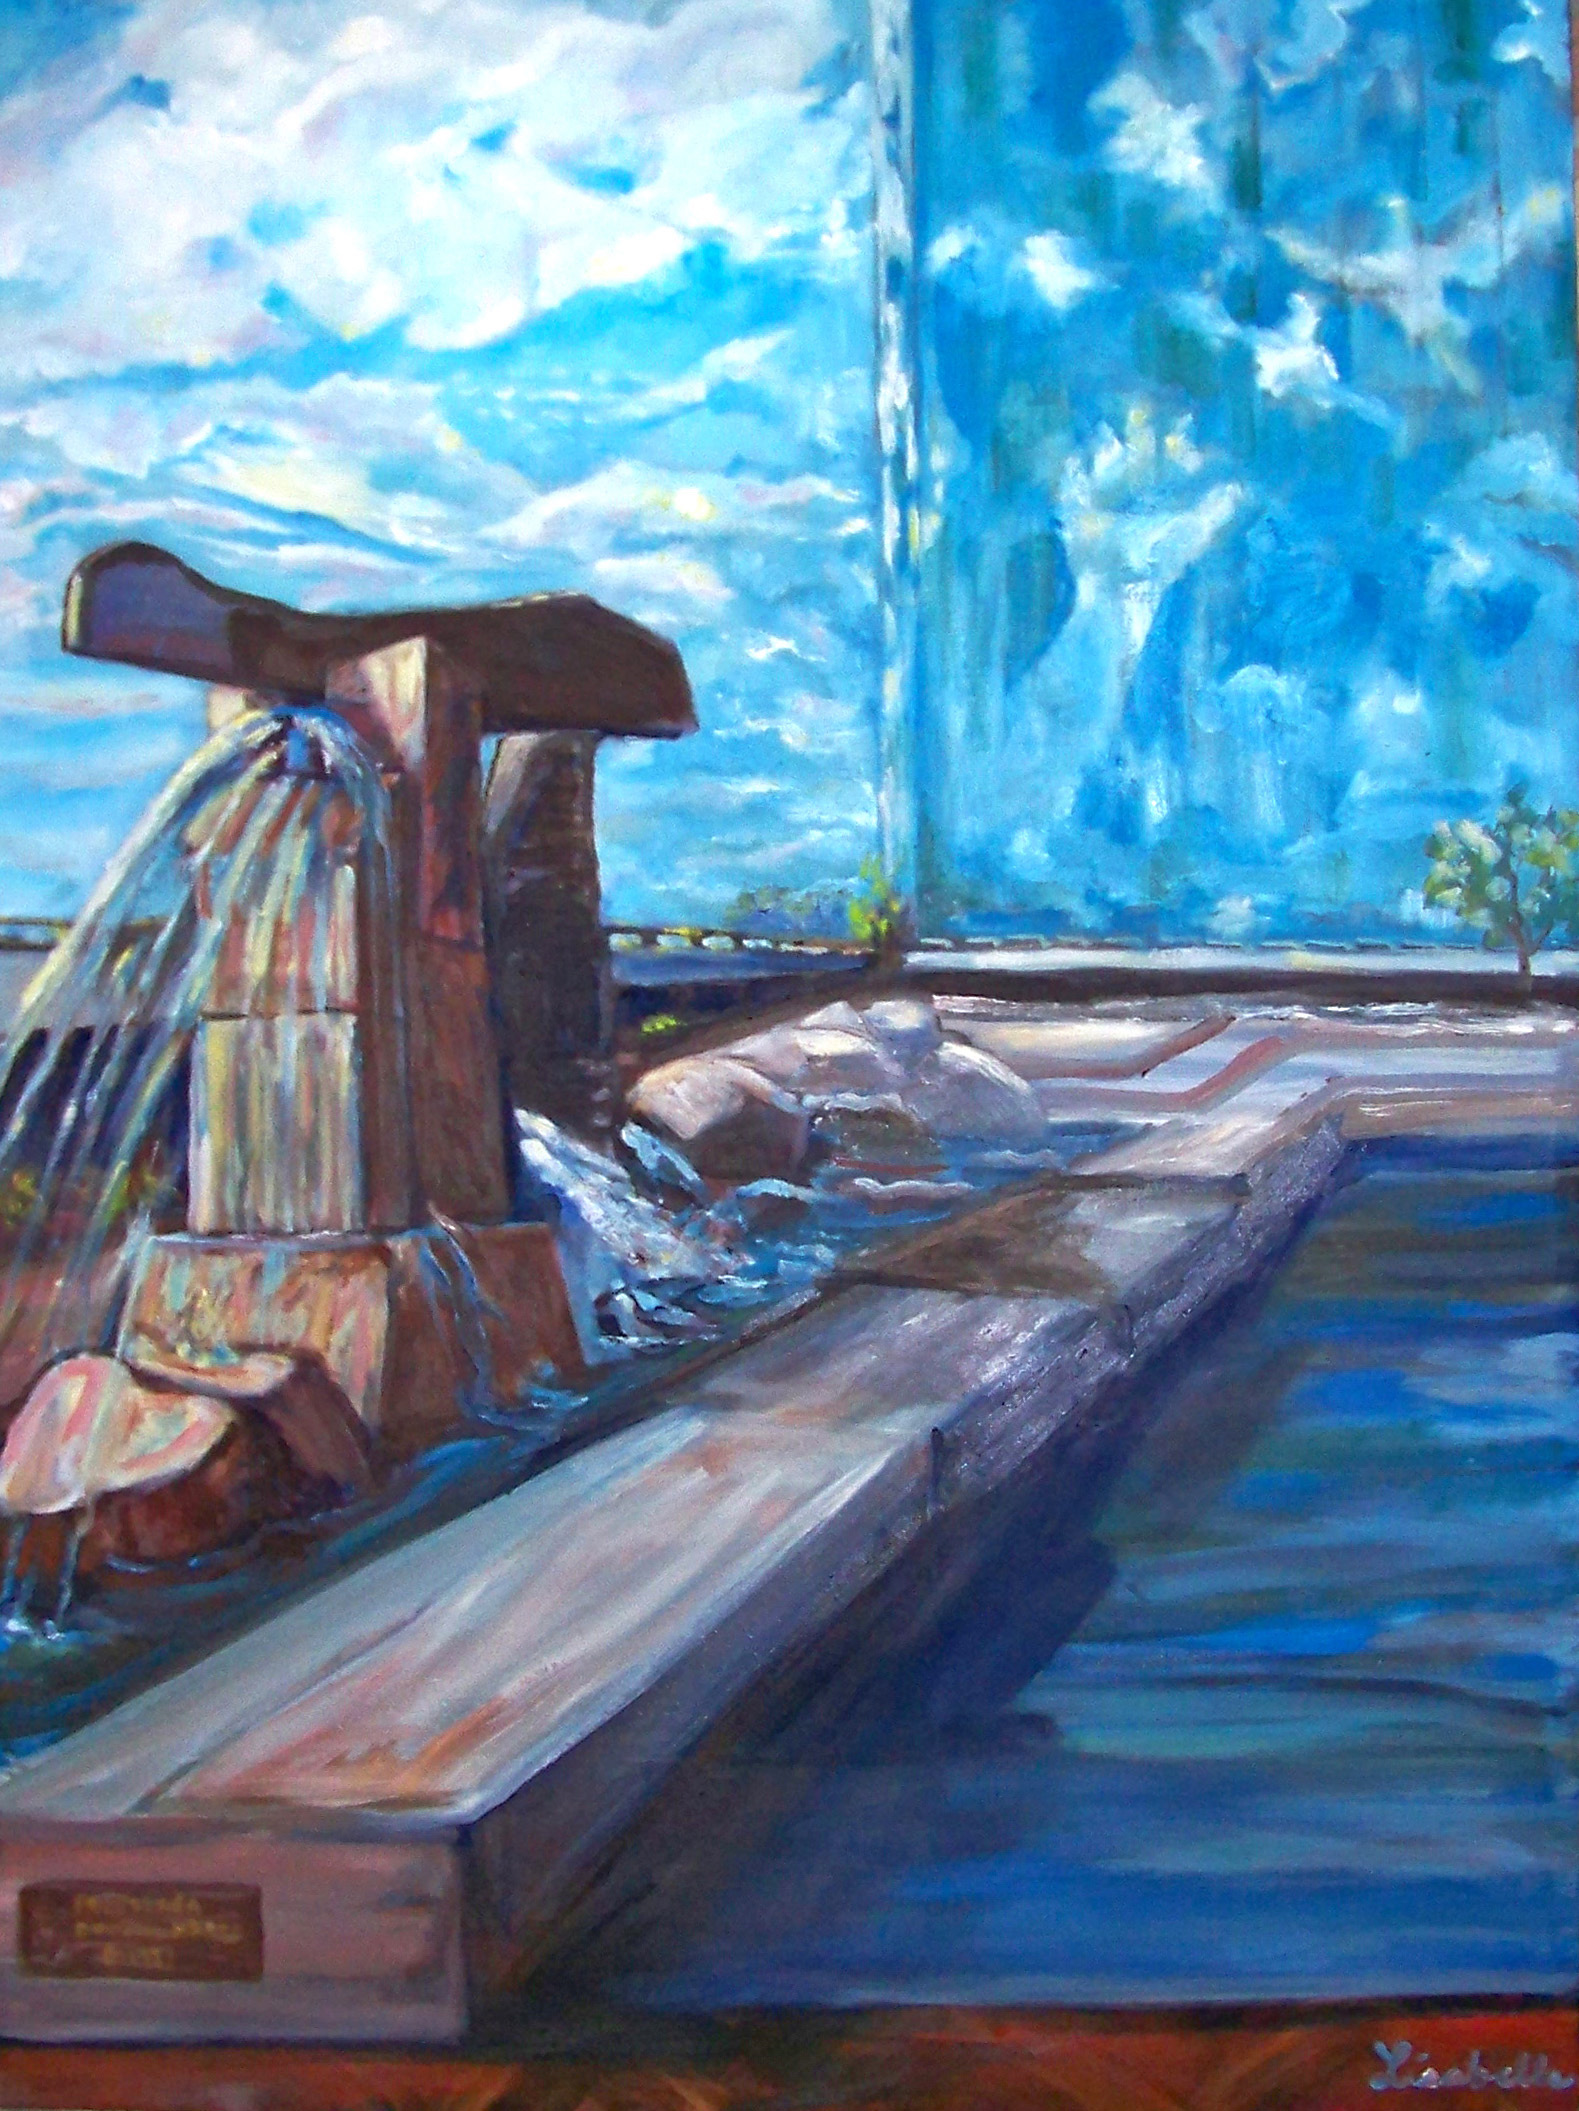 "Toledo, Ohio,  53rd Bank, Reflecting pool, Sculpture art Toledo, OH, Surrealism,  Oil painting by Lisabelle 2008, 36 x 48"" , Surrealistic Painting by Lisabelle, PEACEFUL REFLECTIONS"